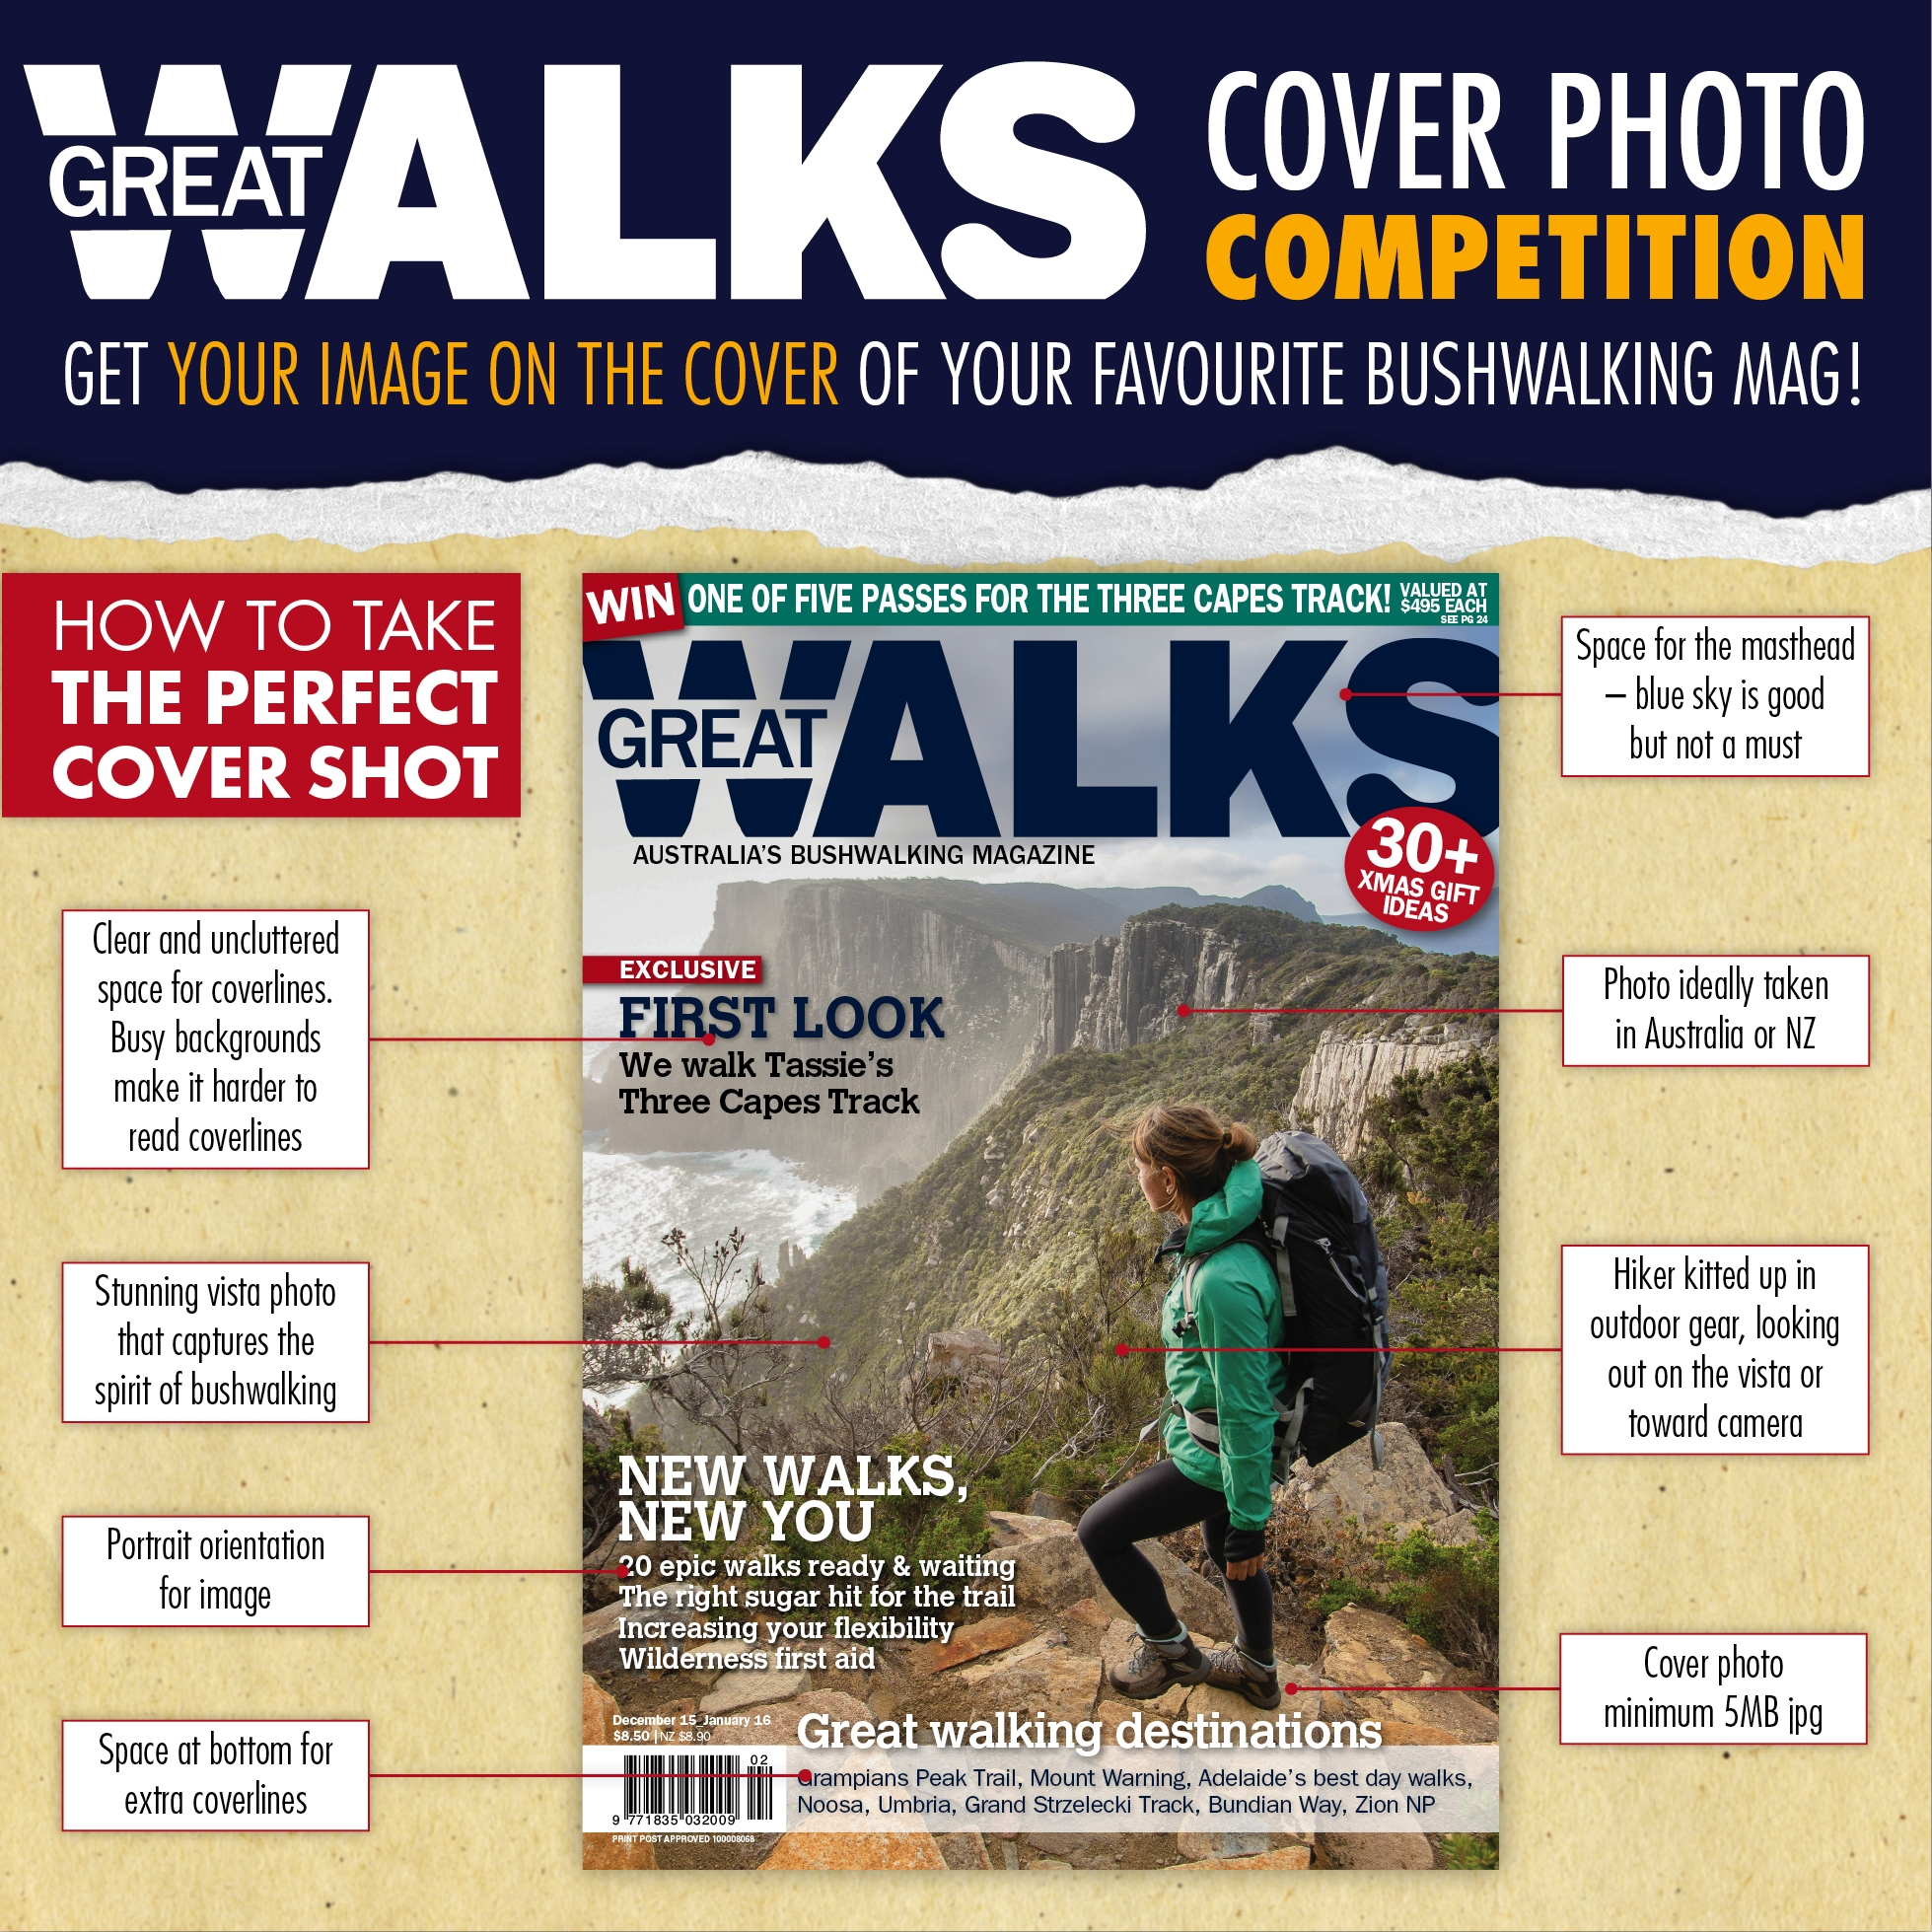 A Great Walks cover